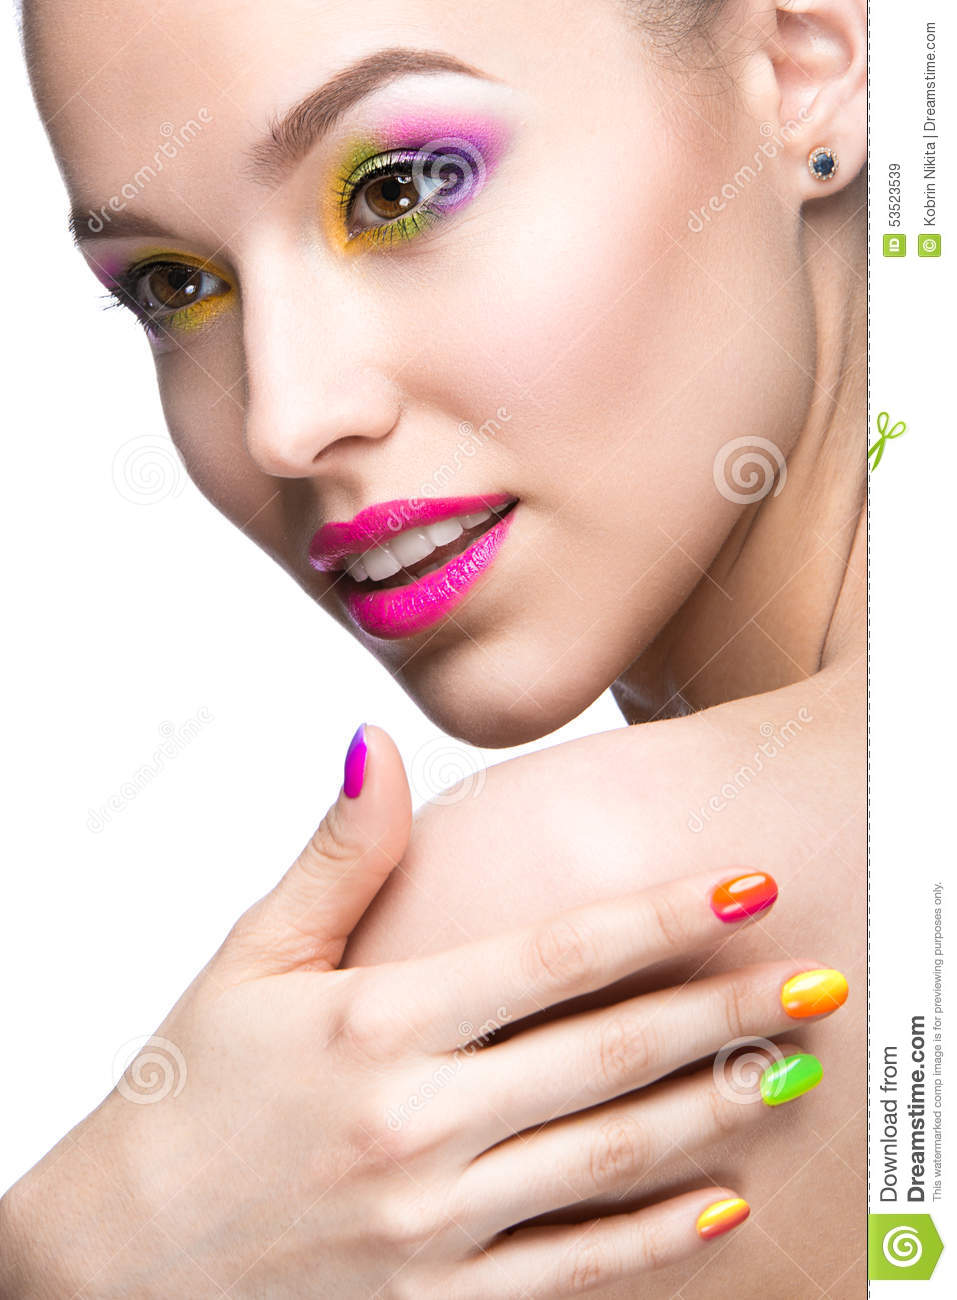 Beautiful Model Girl With Bright Colored Makeup Stock Image - Image ...